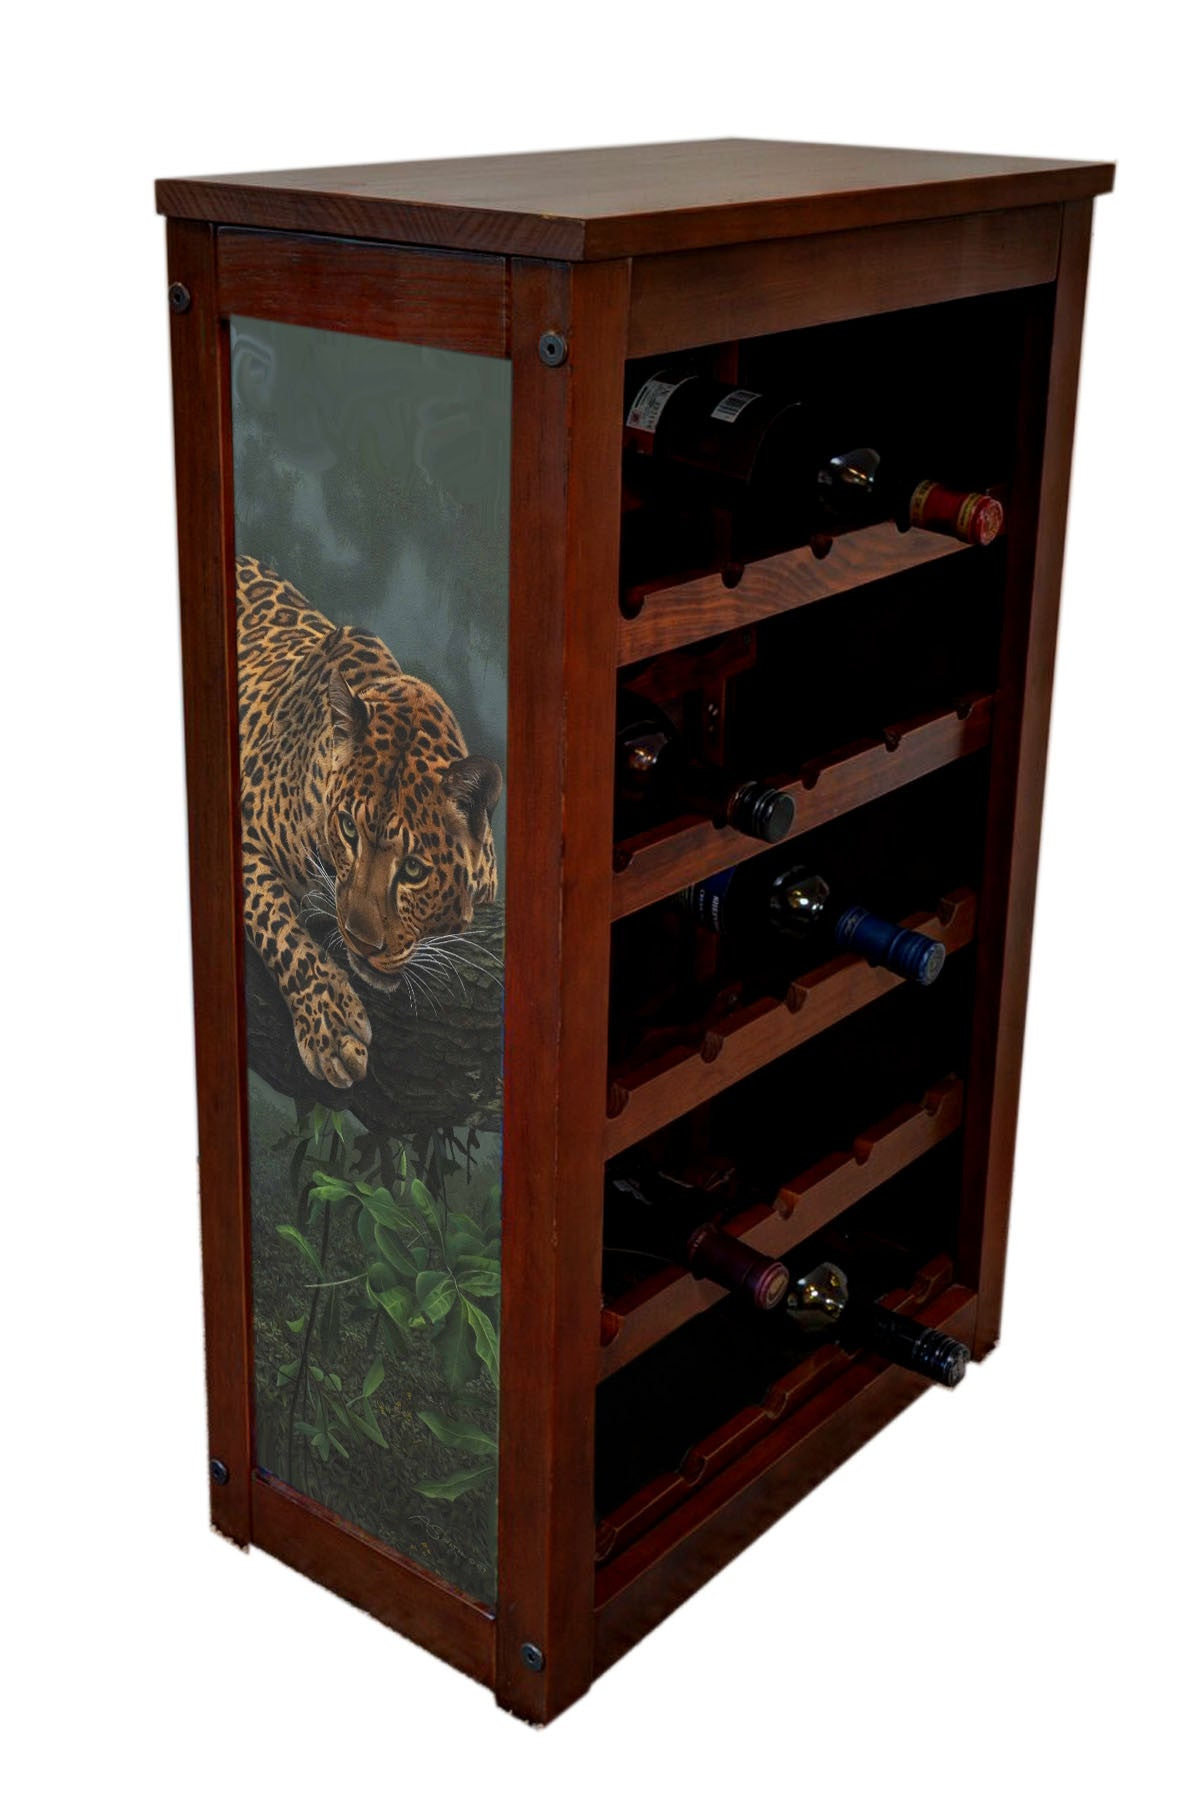 Leopard Wine Rack | Leopard in Tree by Adam Smith